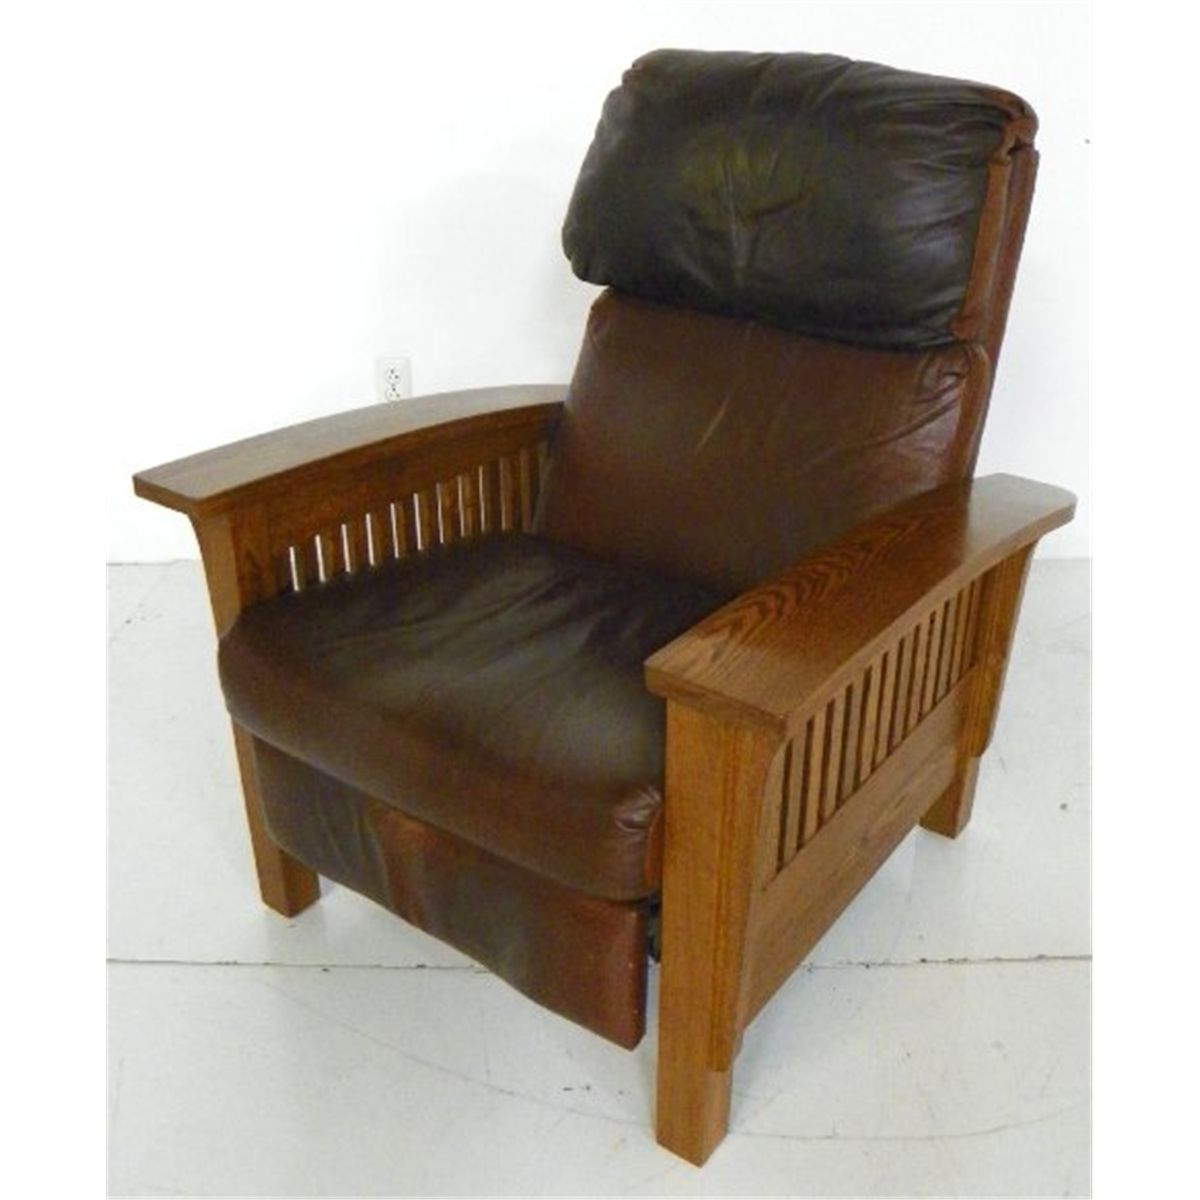 mission recliner chair plans drive medical bathroom safety shower tub bench gray style oak diy free download necessary